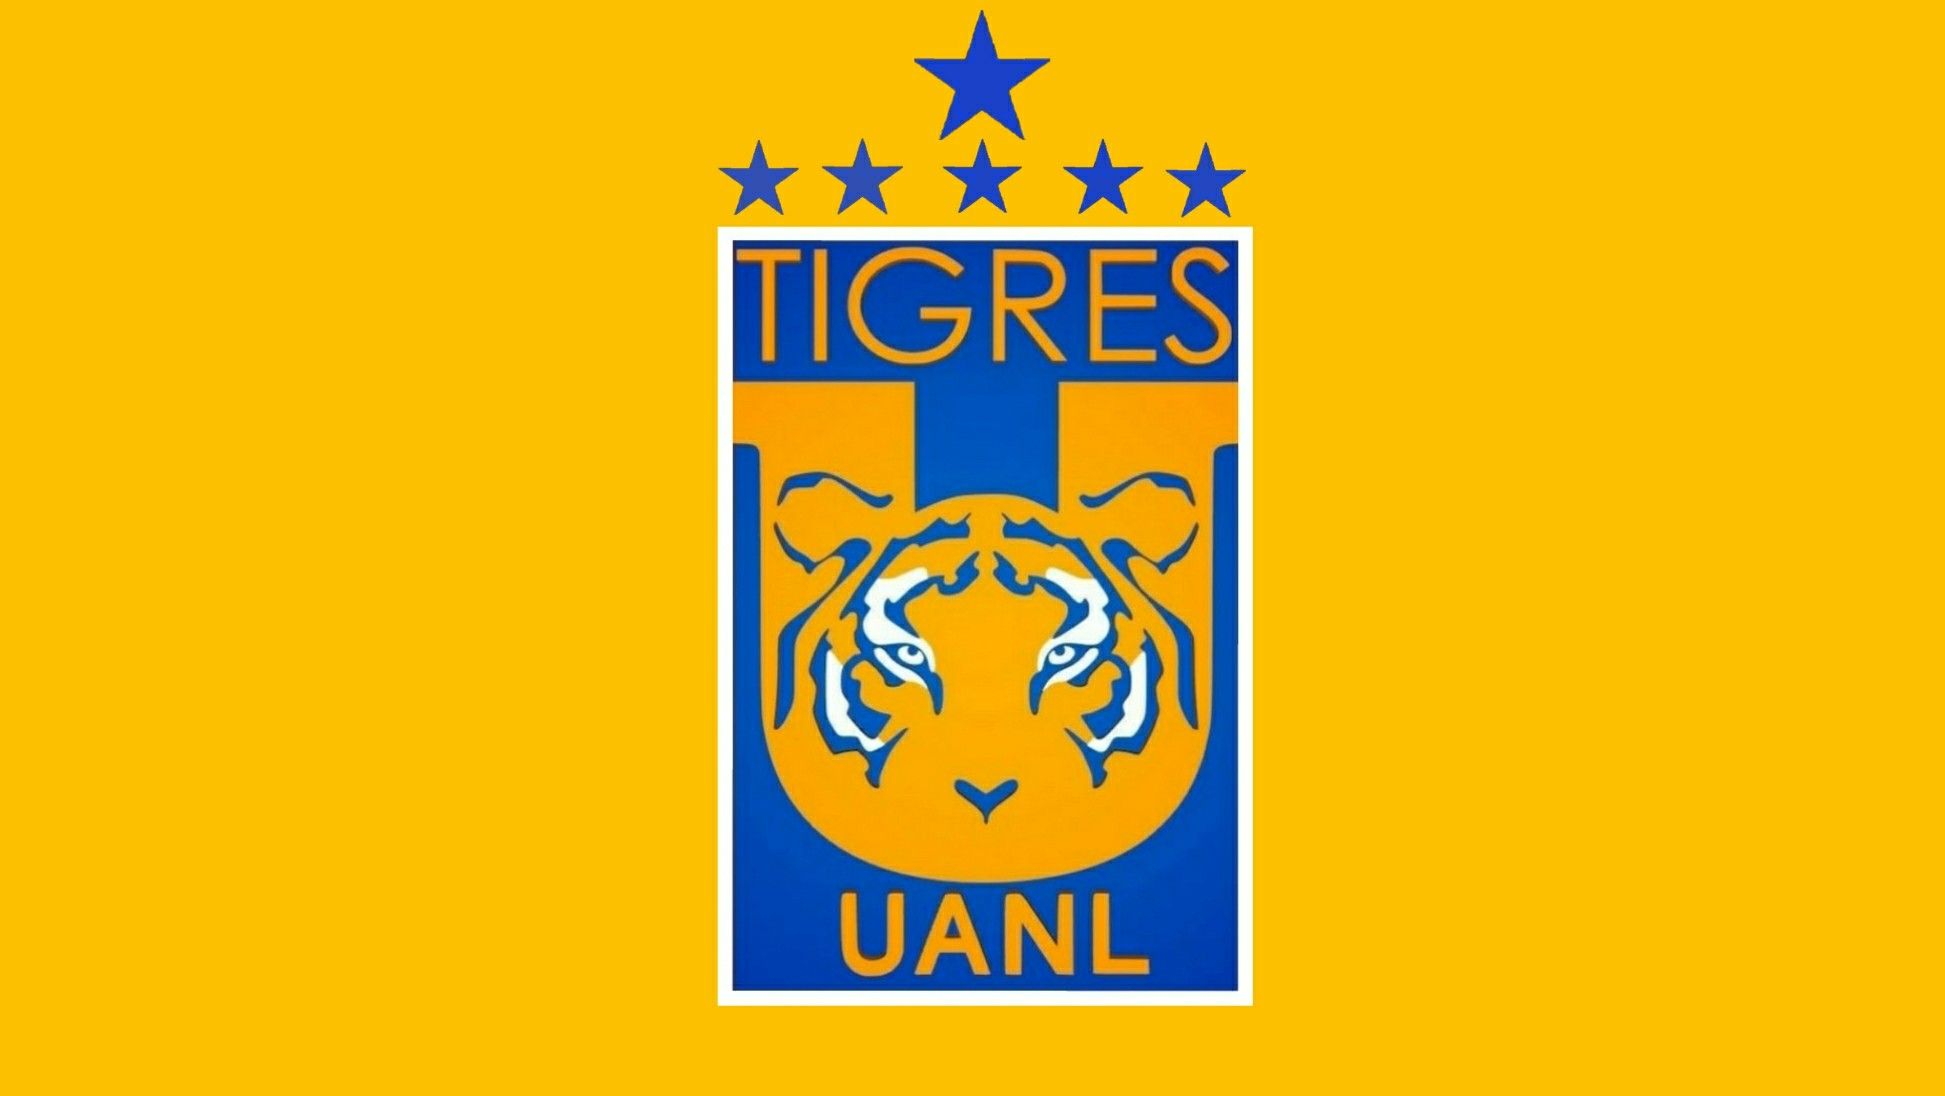 Escudo Tigres Unal 6 Estrellas Tigres Uanl Locked Wallpaper Y